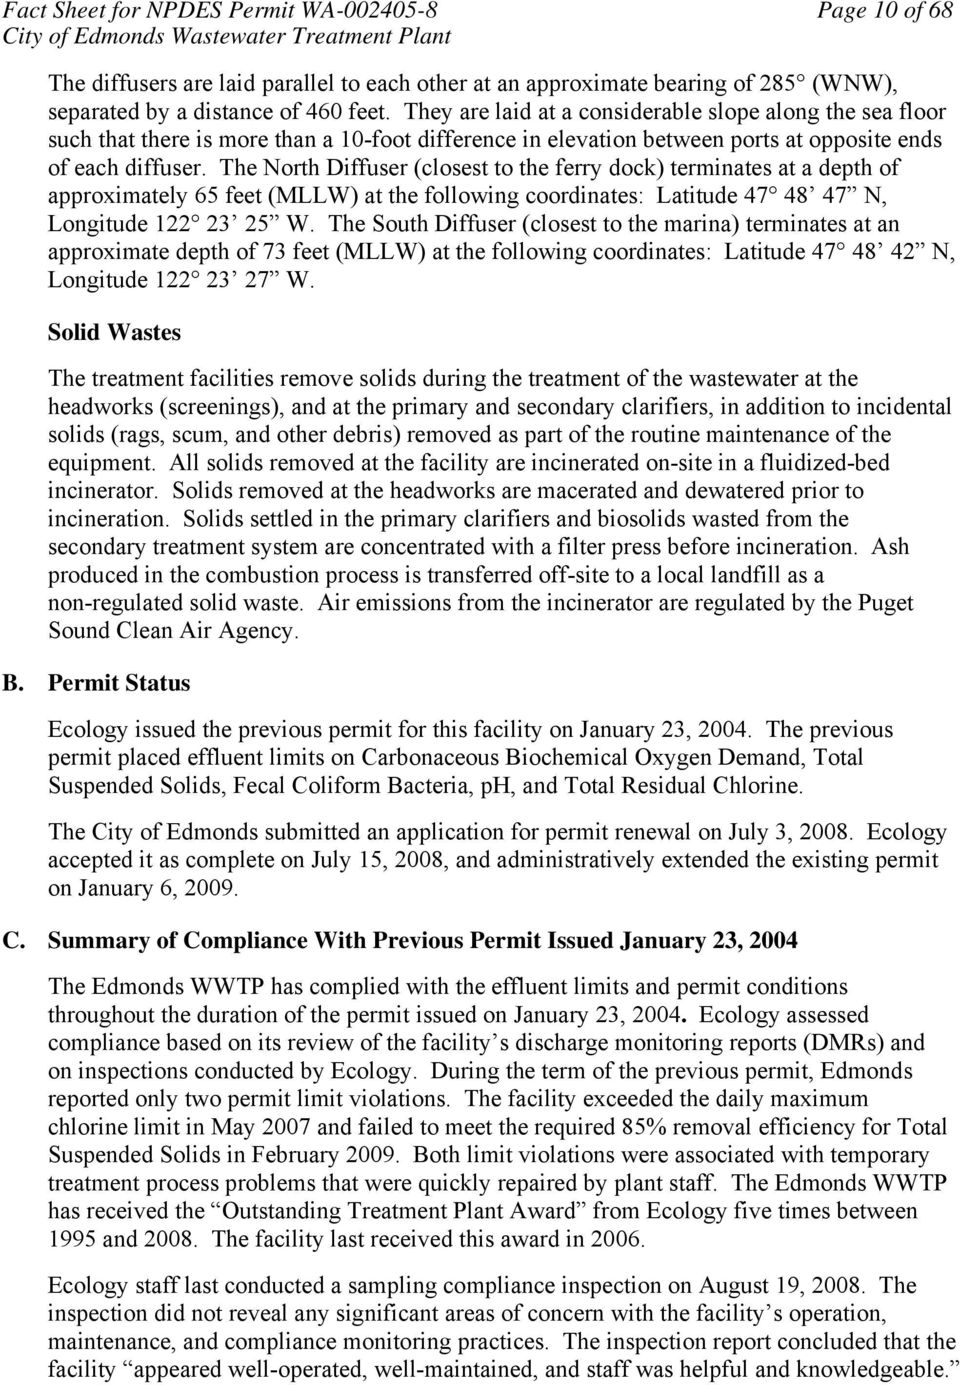 Fact sheet for npdes permit wa pdf the north diffuser closest to the ferry dock terminates at a depth of approximately 11 fact sheet publicscrutiny Image collections